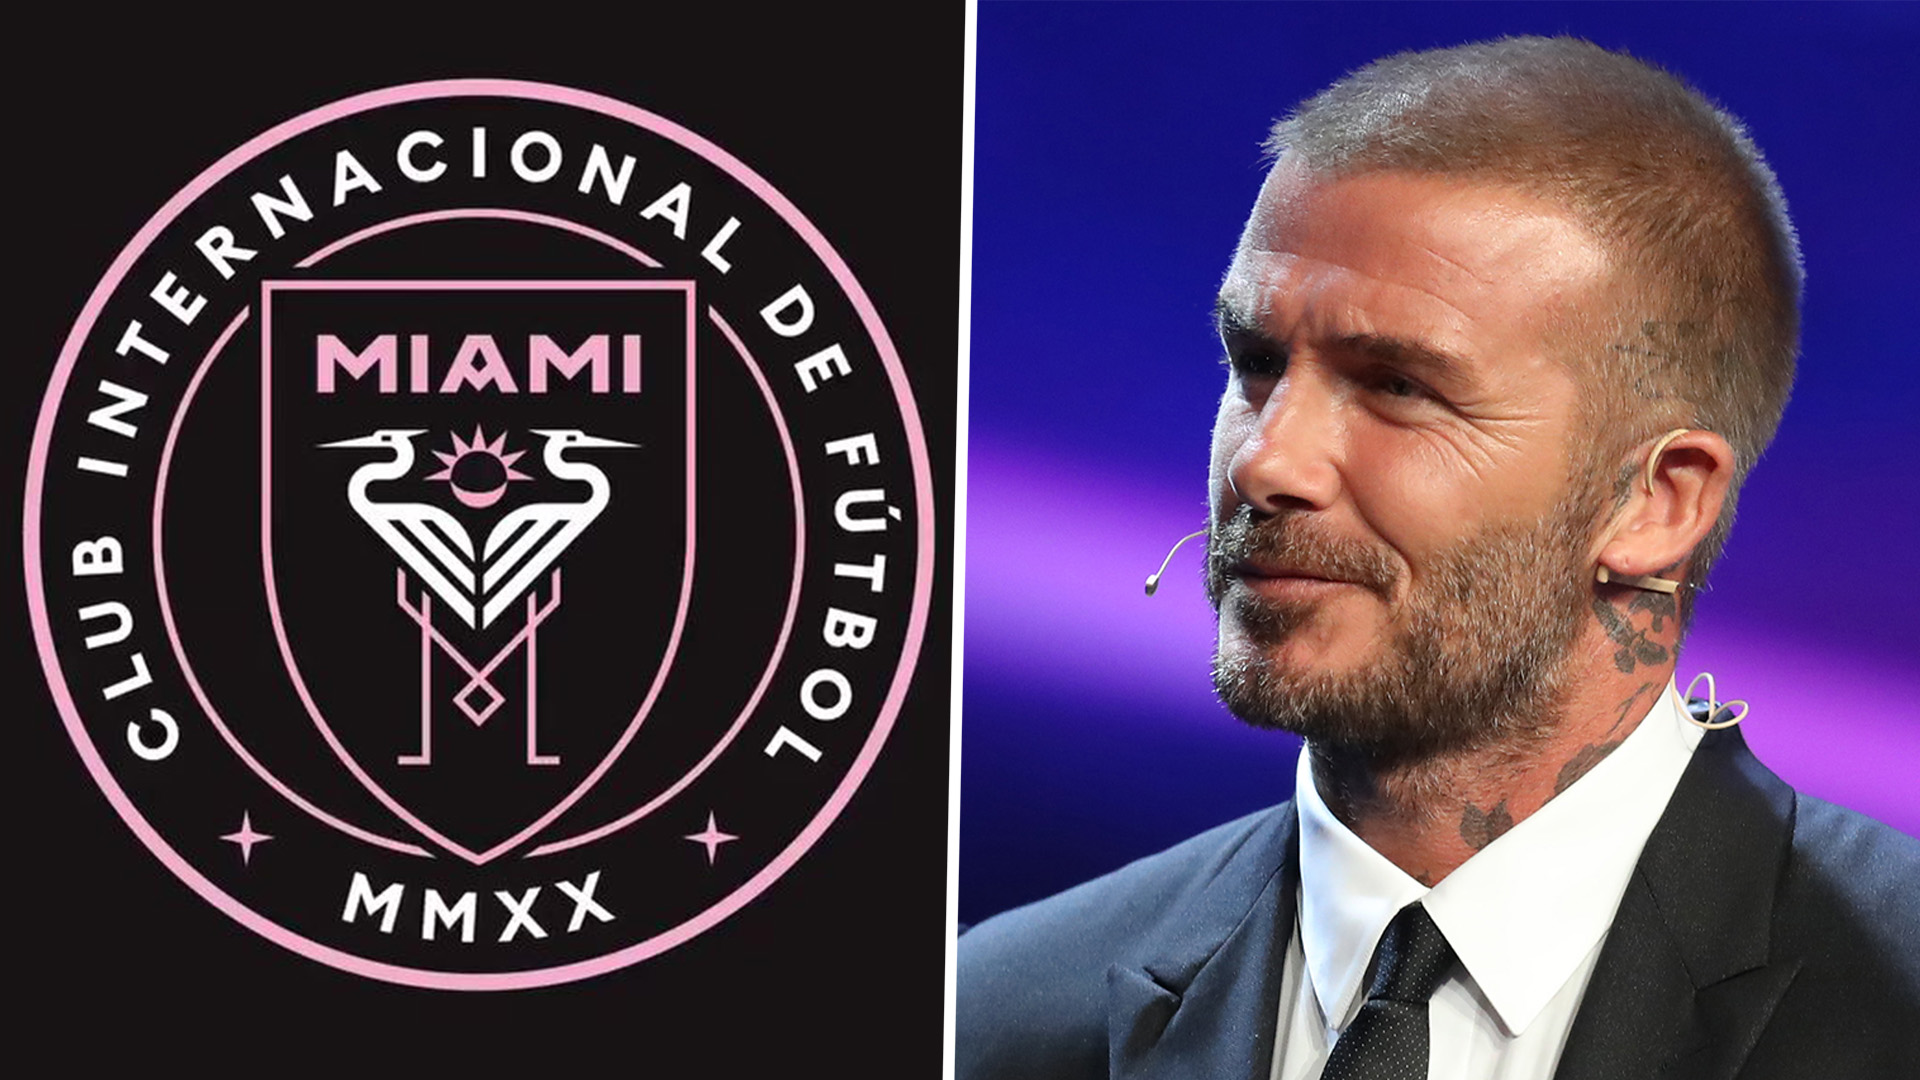 David Beckham's MLS team to be called Inter Miami